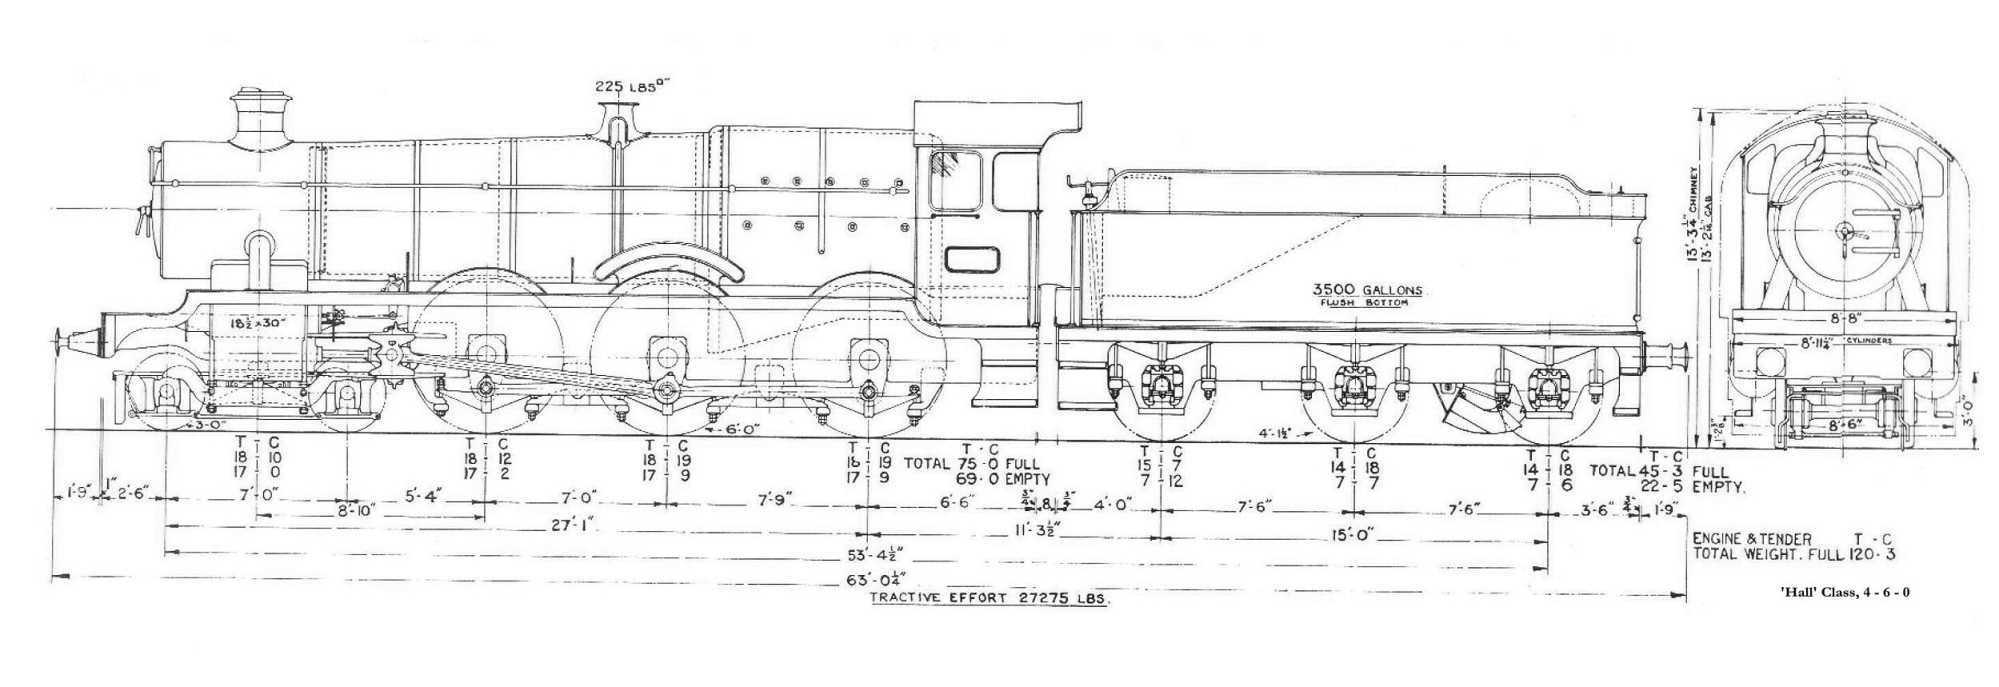 A selection of Great Western Railway locomotive drawings